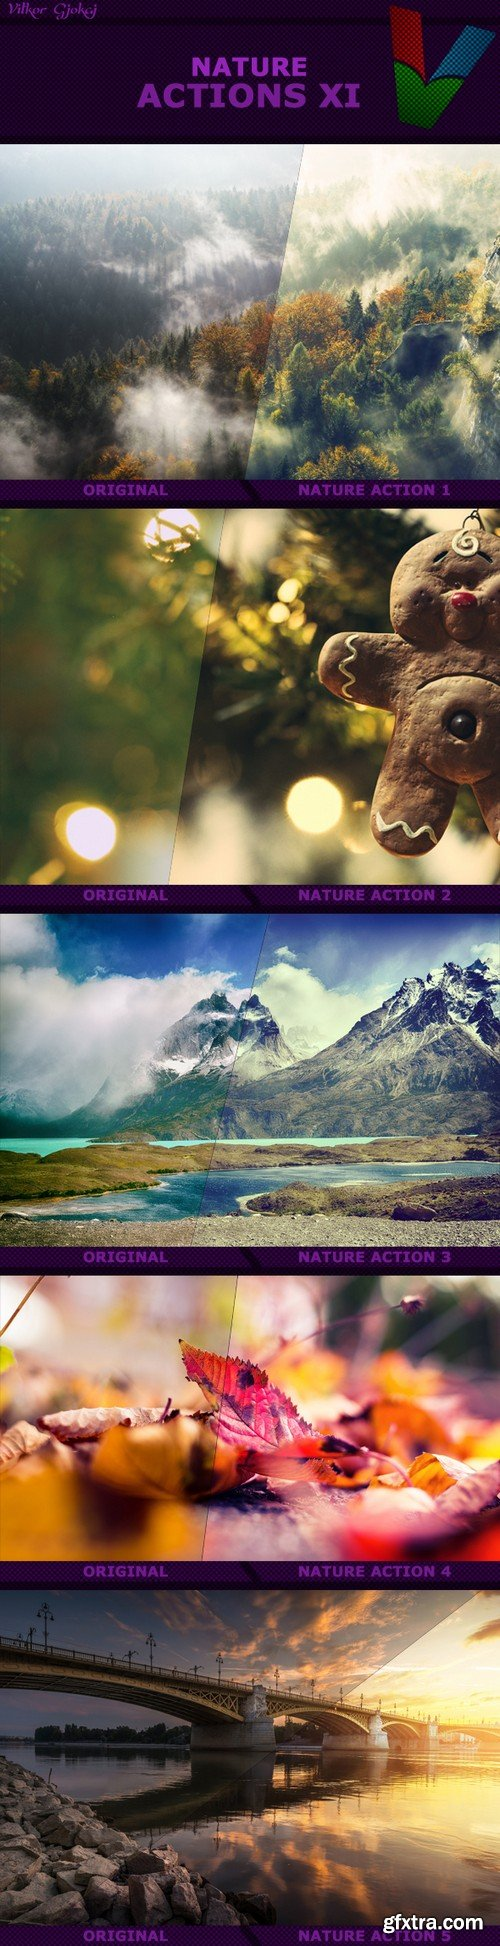 Graphicriver - Nature Actions XI 18893169